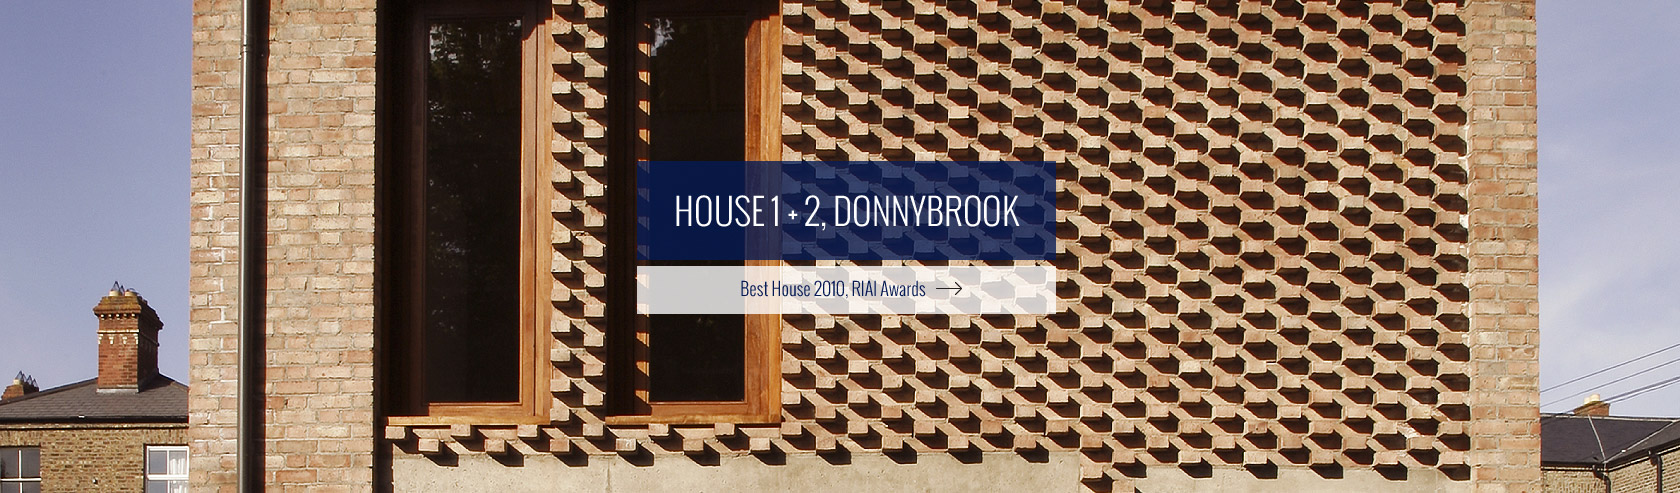 house 1 + 2 Donnybrook